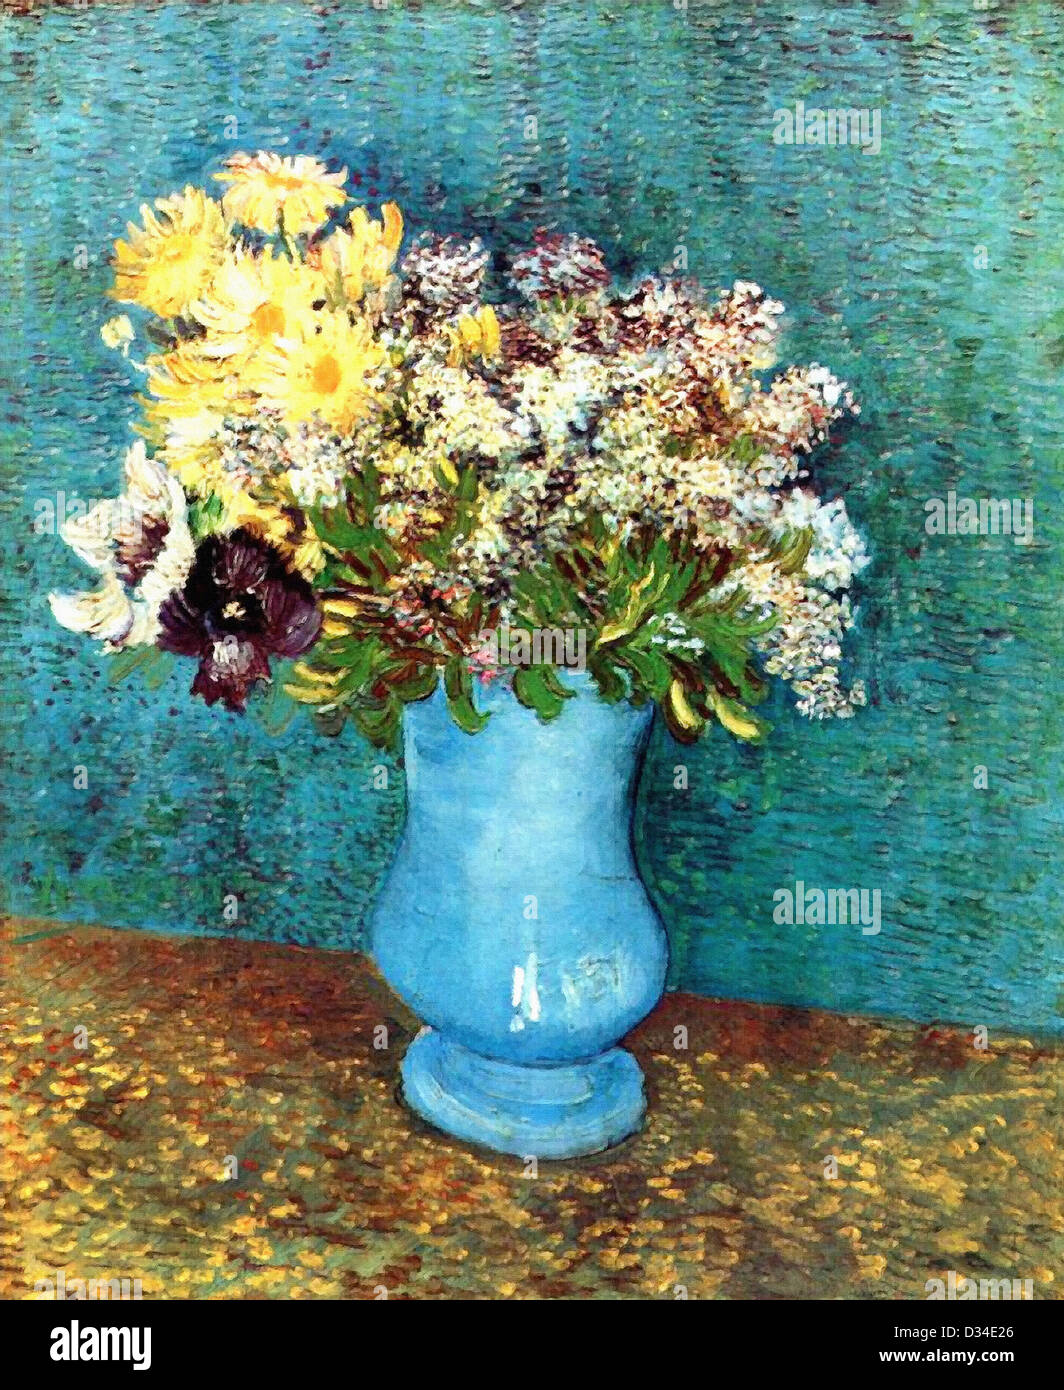 Vincent van Gogh: Vase with Flieder, Margerites and Anemones. 1887. Oil on canvas. Post-Impressionism. Private Collection. - Stock Image